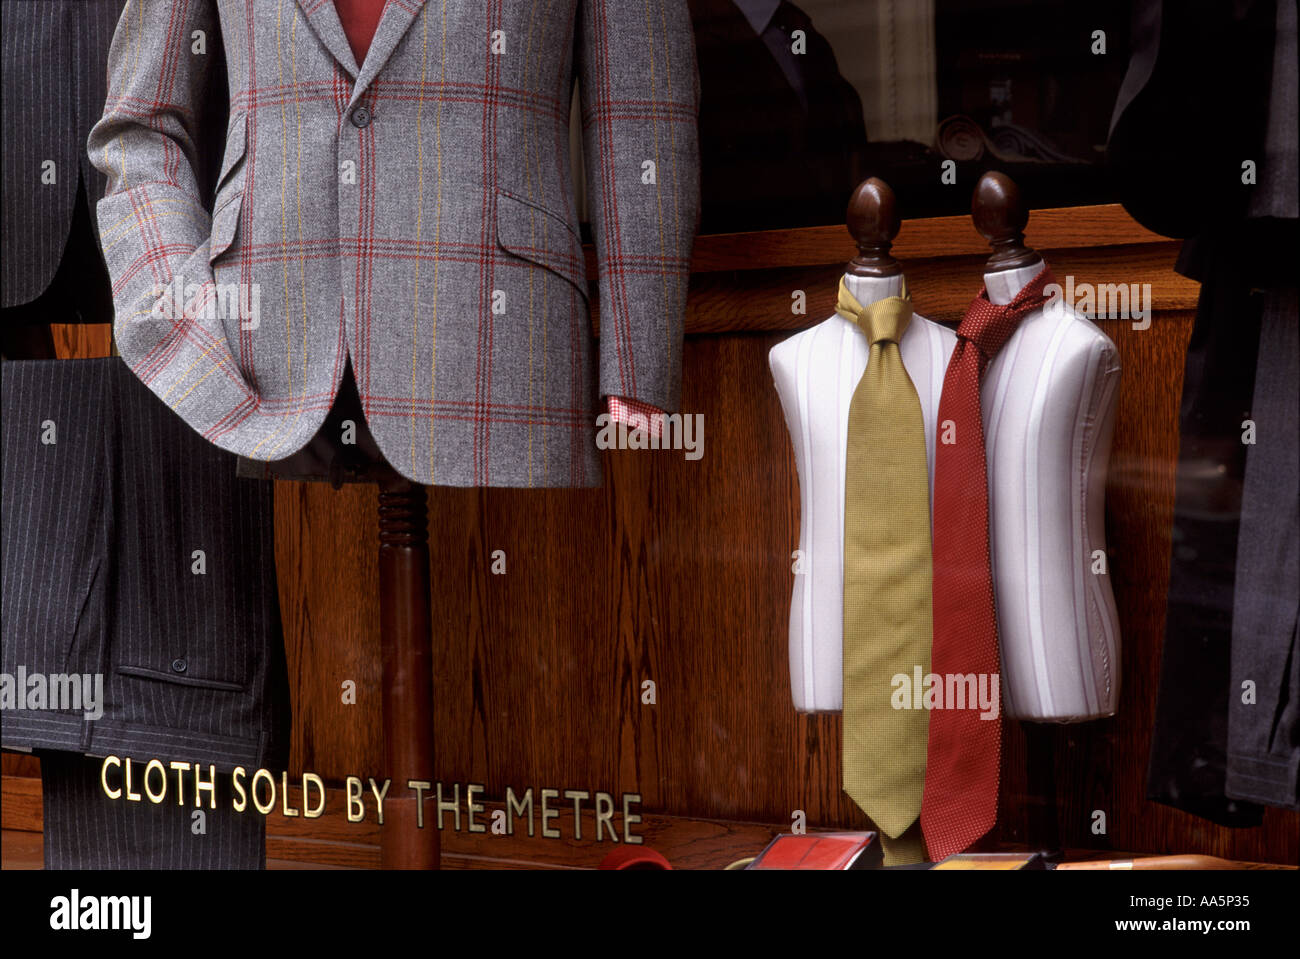 Savile Row tailor shop window with miniature judies and ties, wool jacket, pin striped trousers & sign: Cloth Sold By The Metre - Stock Image